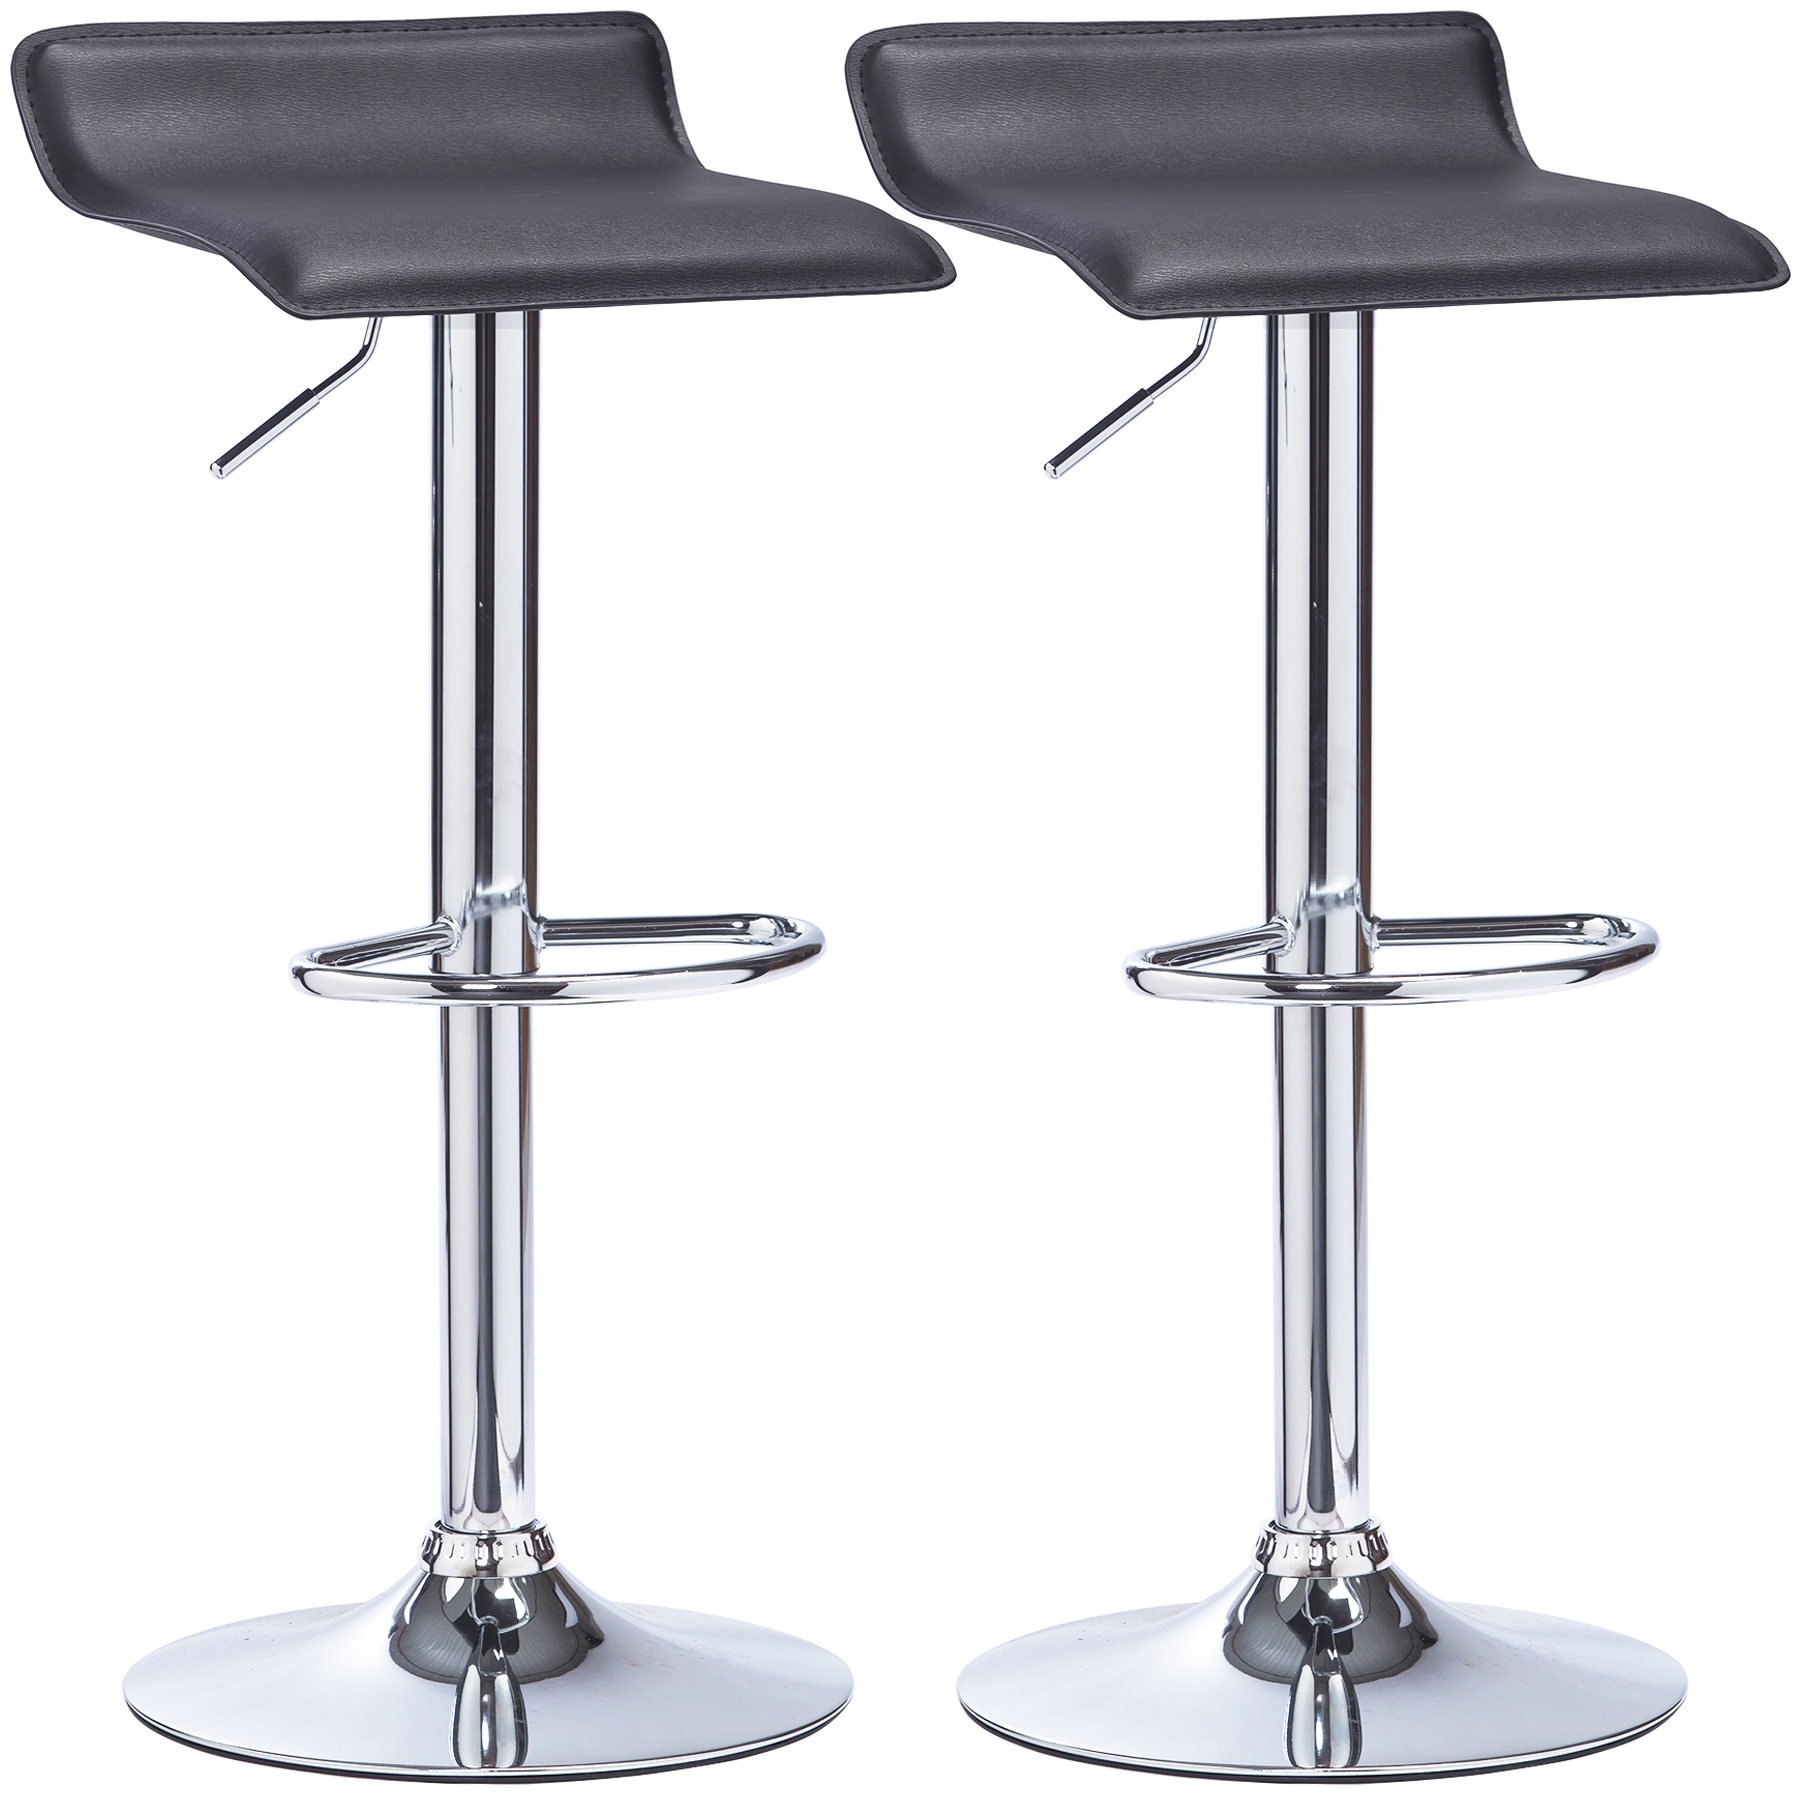 Bar Stools Set Of 2 Swivel Kitchen Breakfast Stools Chair Faux Leather U005 Ebay